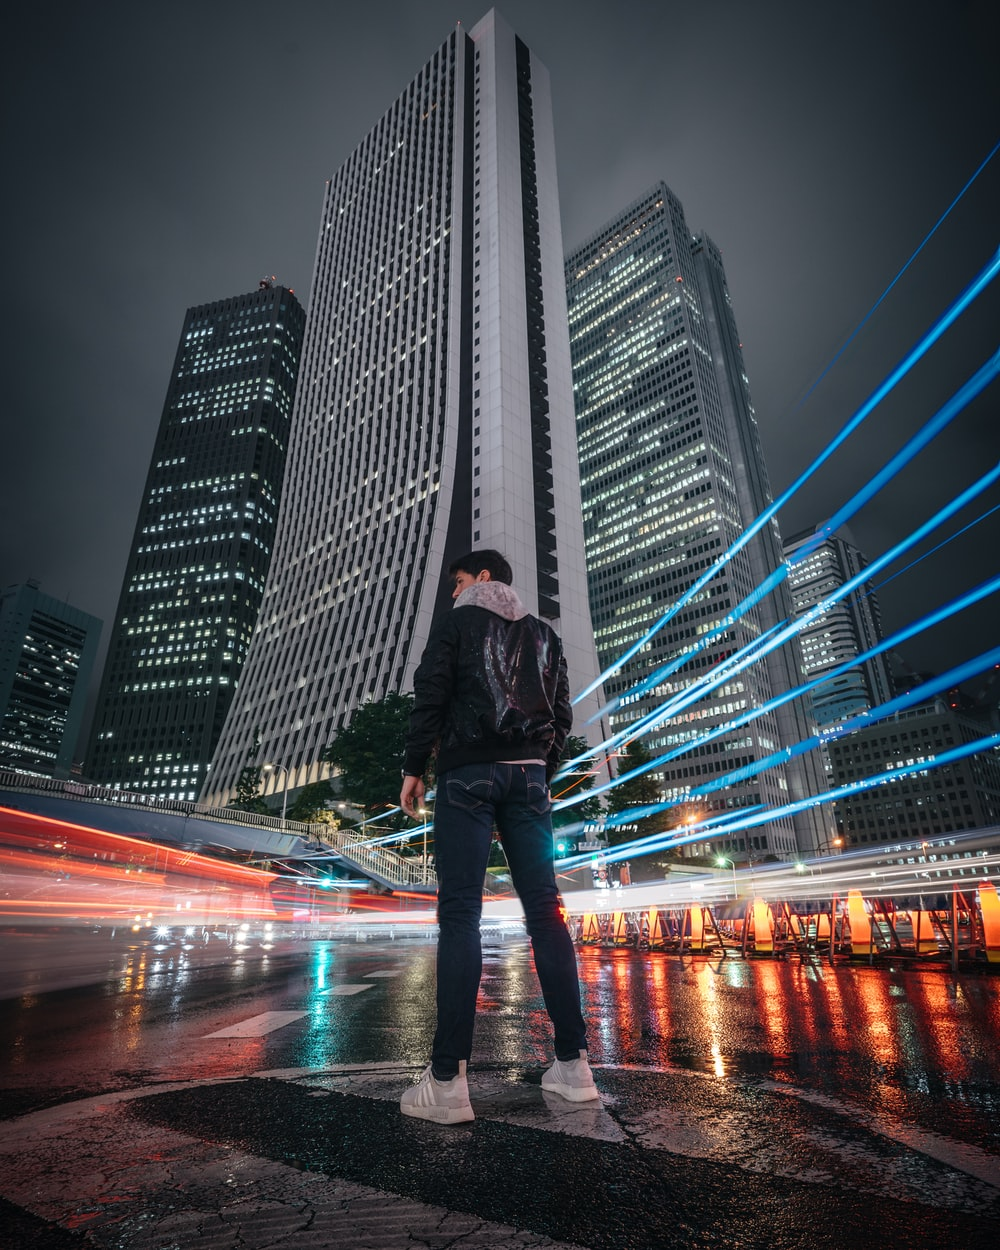 man in black jacket and blue denim jeans standing on road during night time